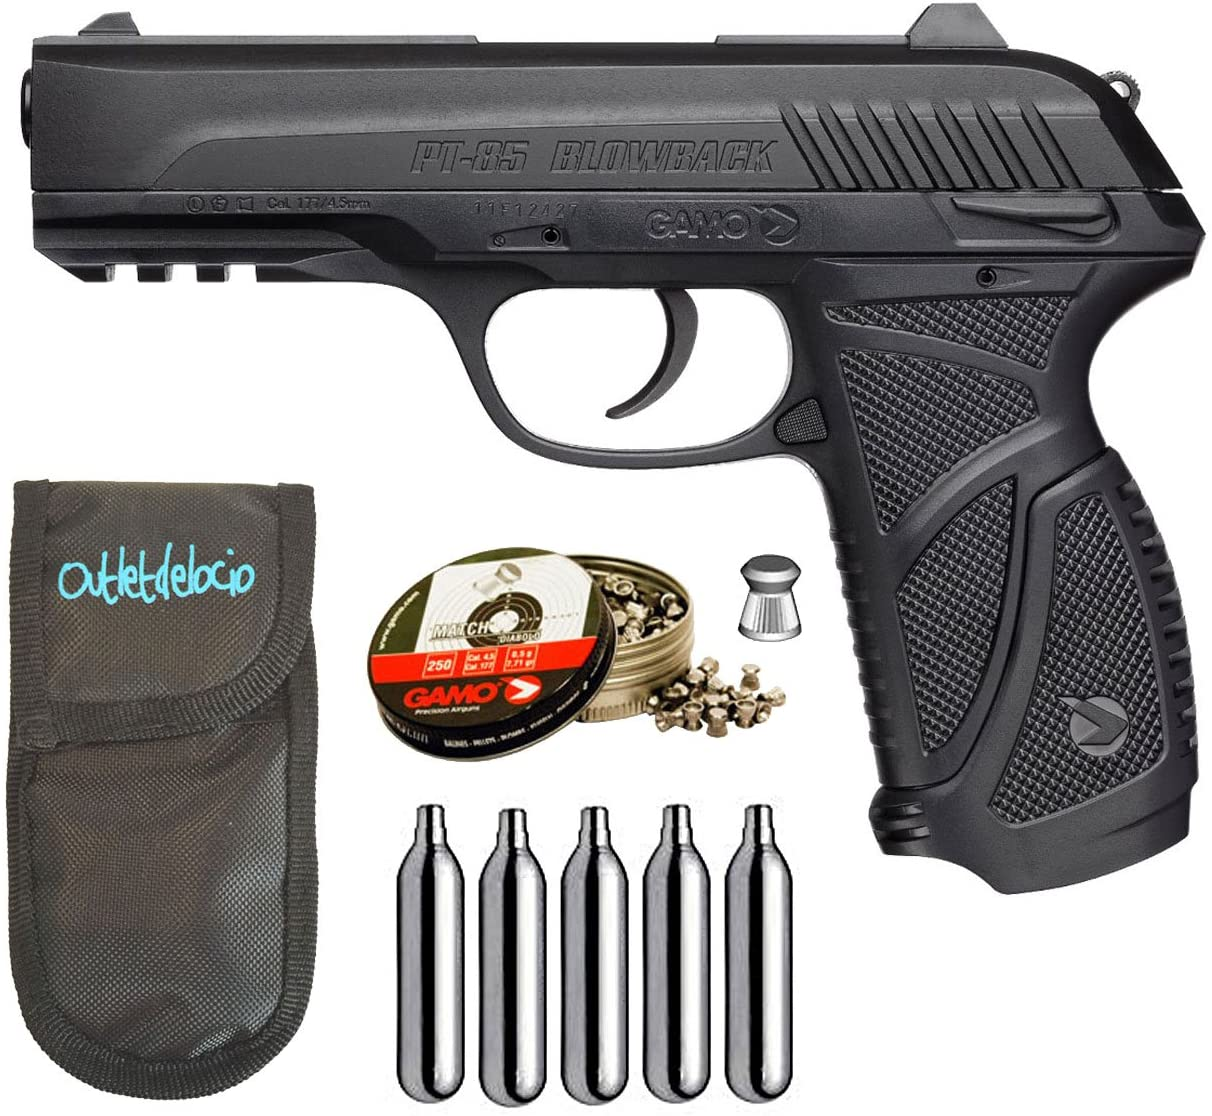 Pack pistola Perdigón Gamo PT-85 4,5mm Blowback. + Funda + balines + bombonas co2 23054/29318/38203